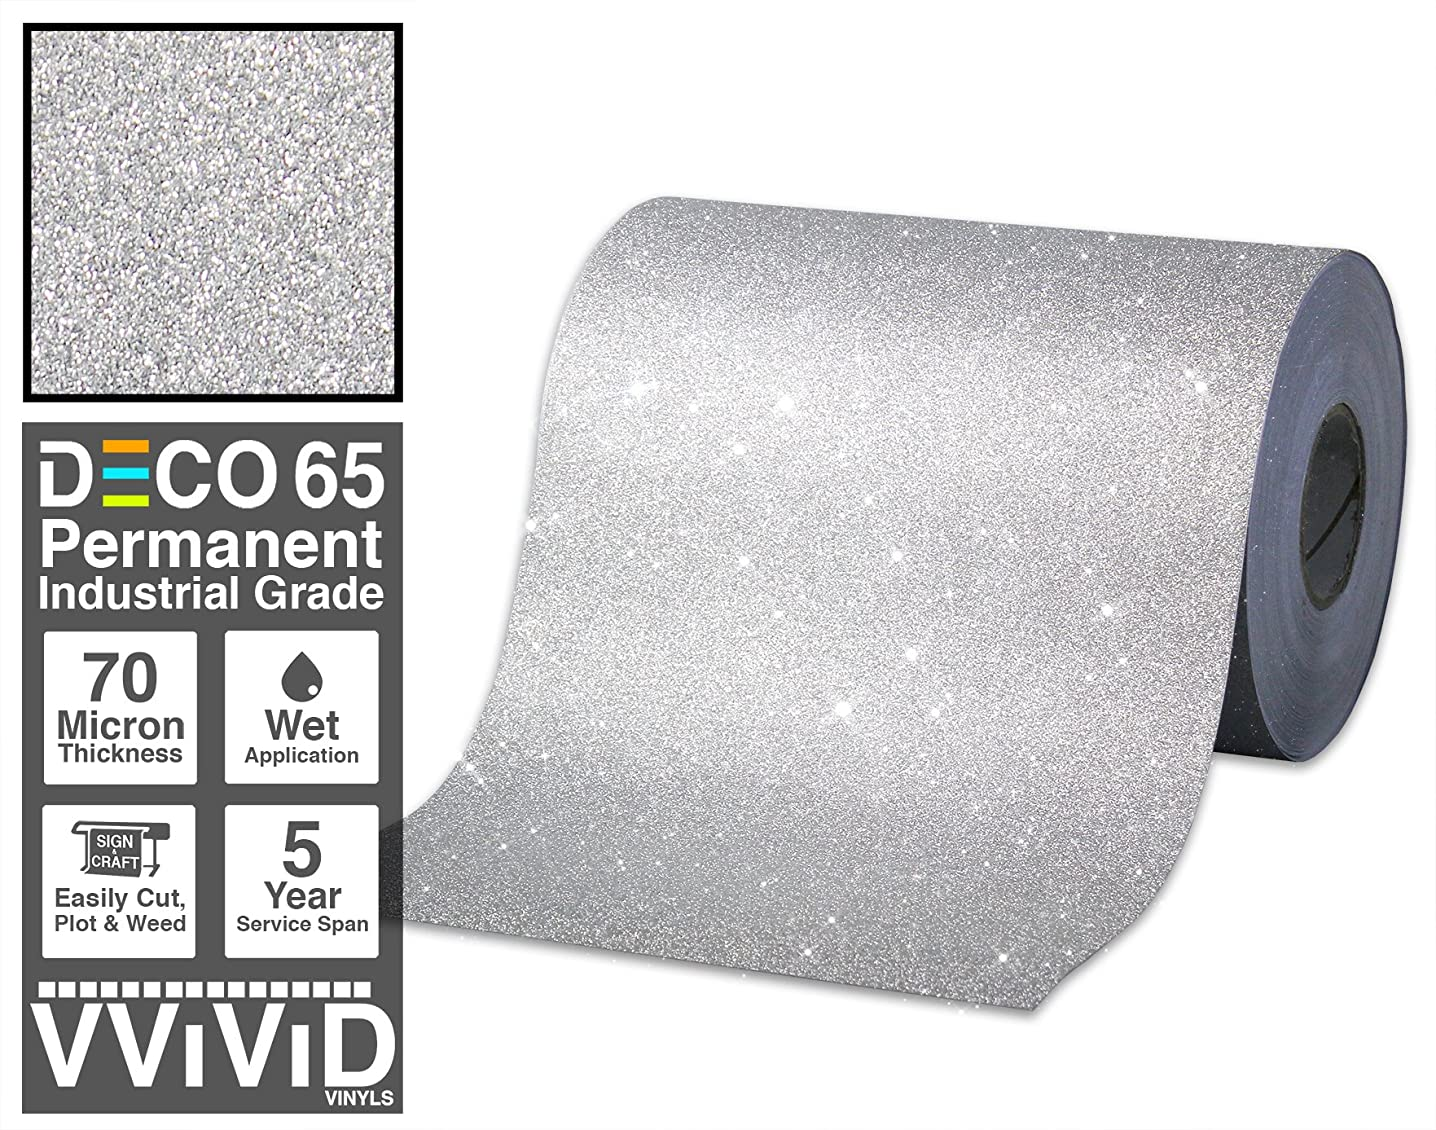 VViViD Glitter Silver DECO65 Permanent Adhesive Craft Vinyl Roll for Cricut, Silhouette & Cameo (100ft x 1ft)